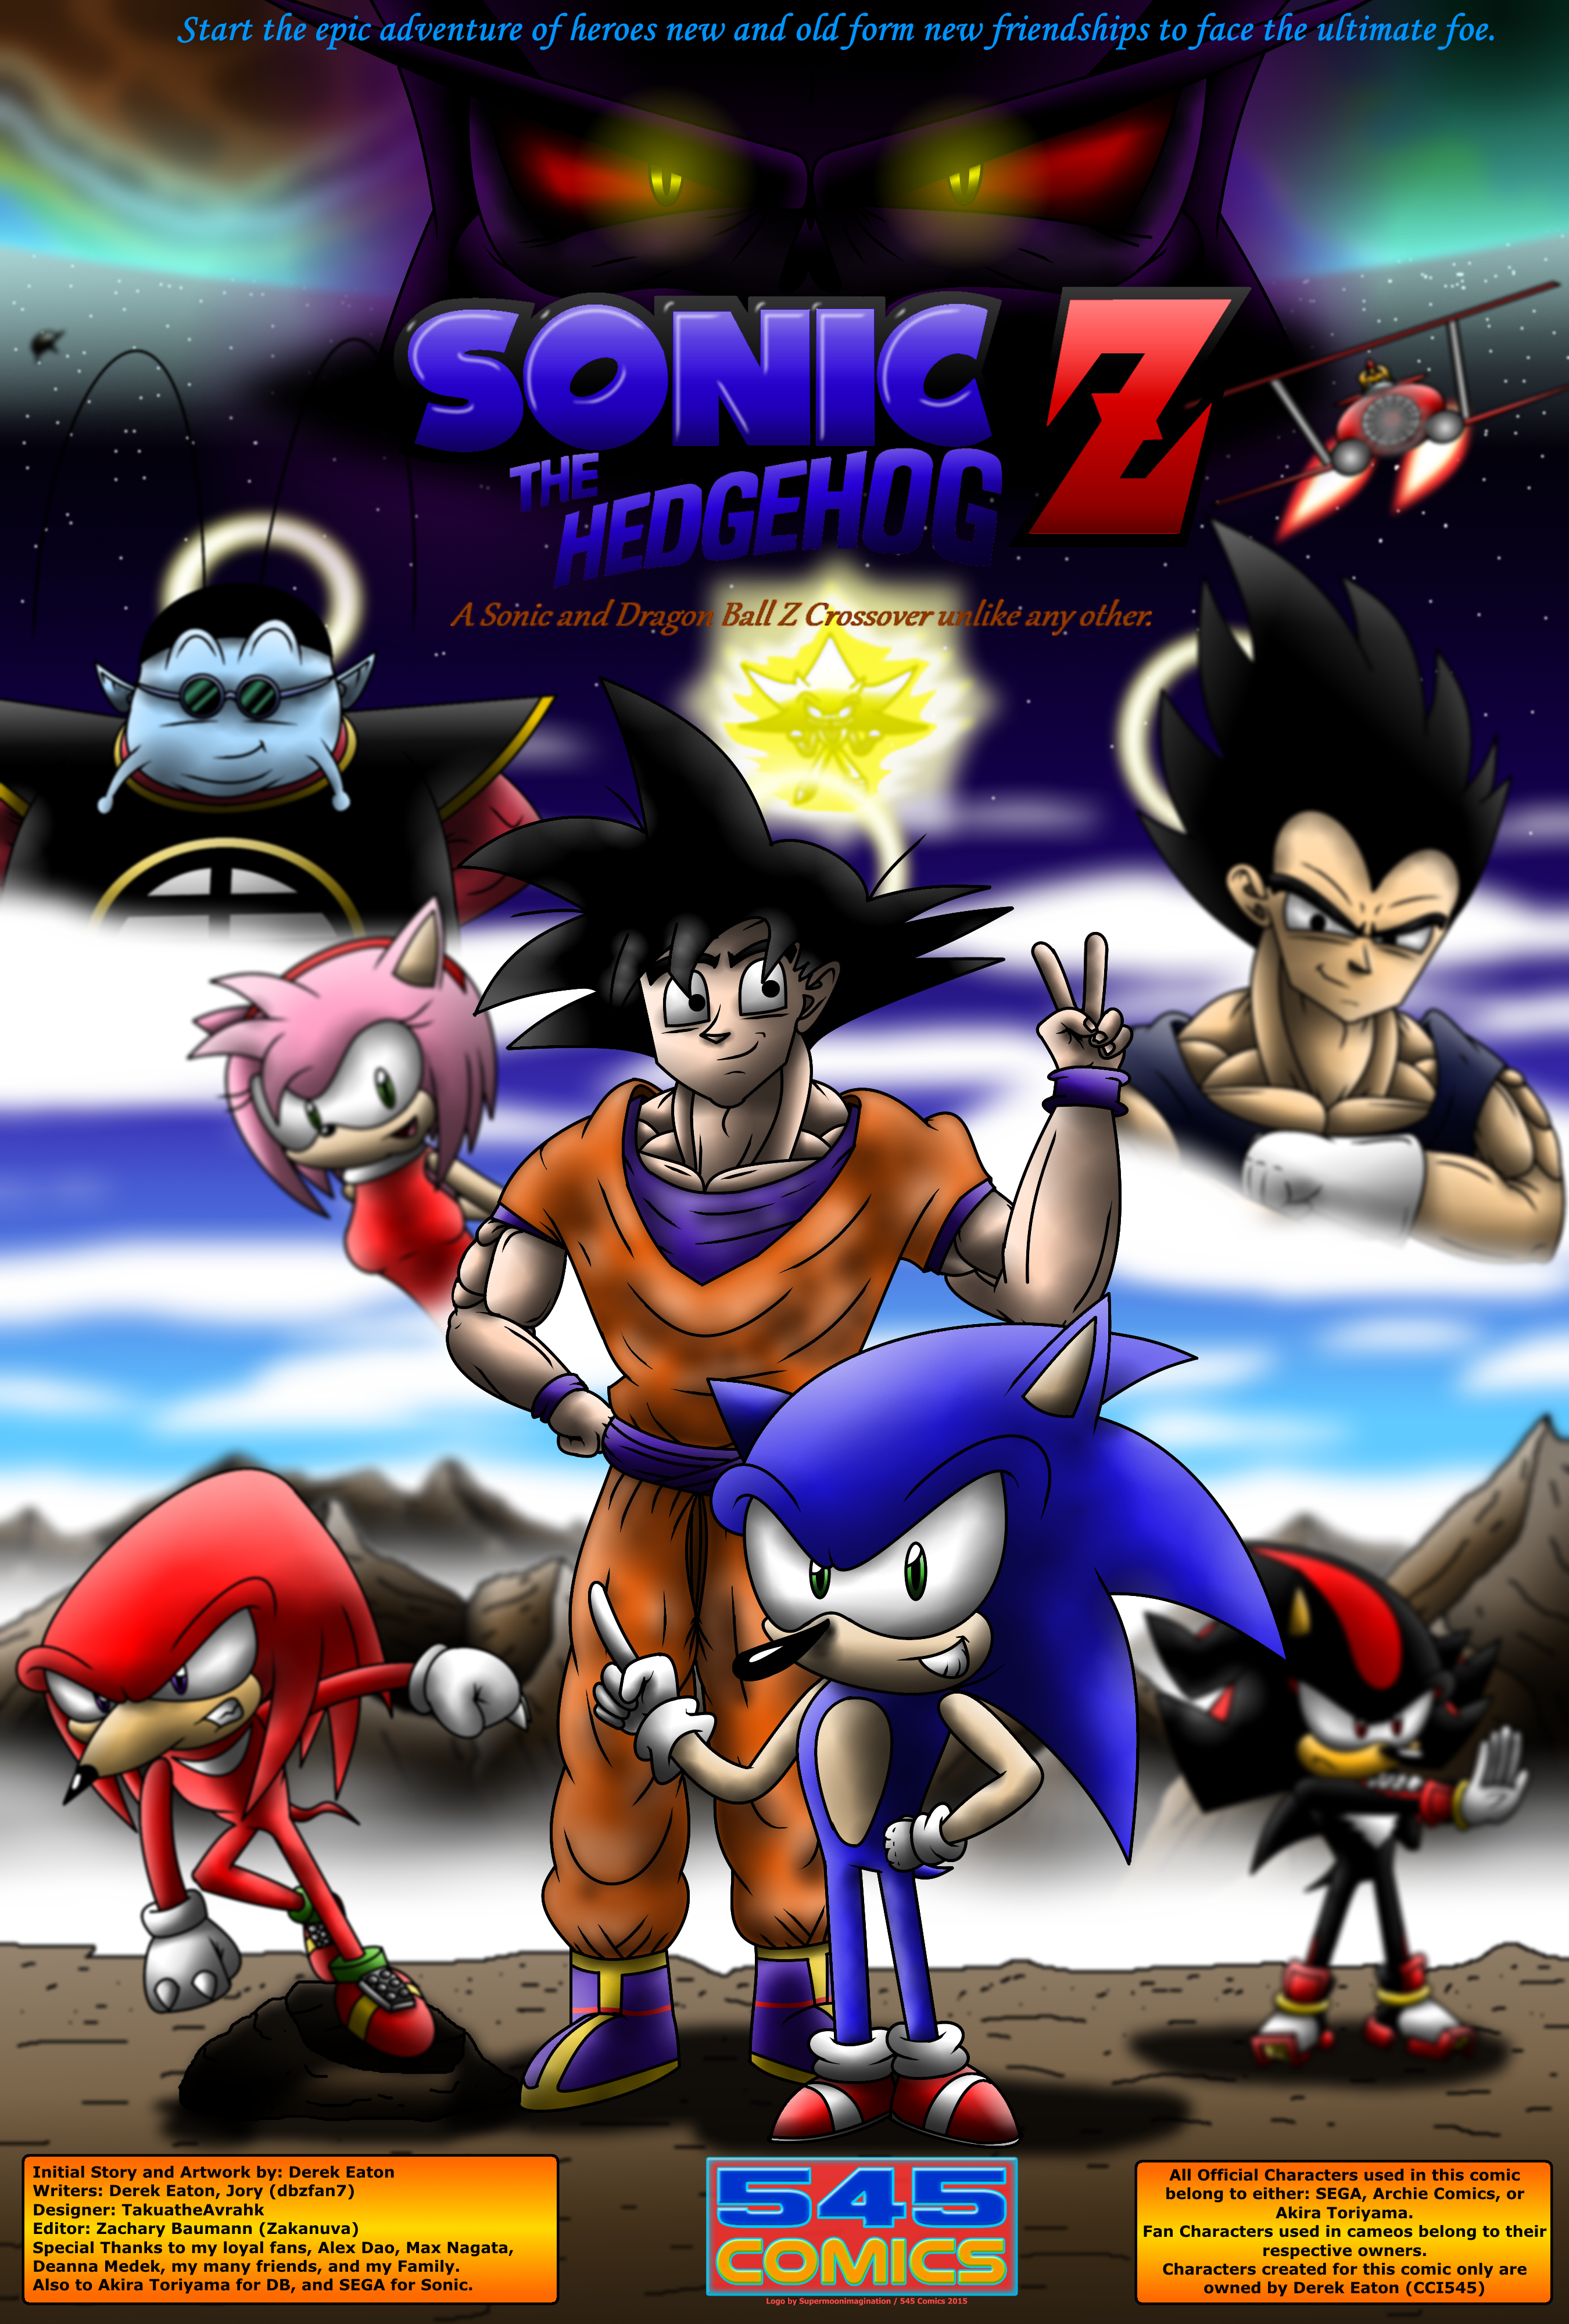 Sonic The Hedgehog Z Comic Cover 2015 Links Below By Cci545 On Deviantart